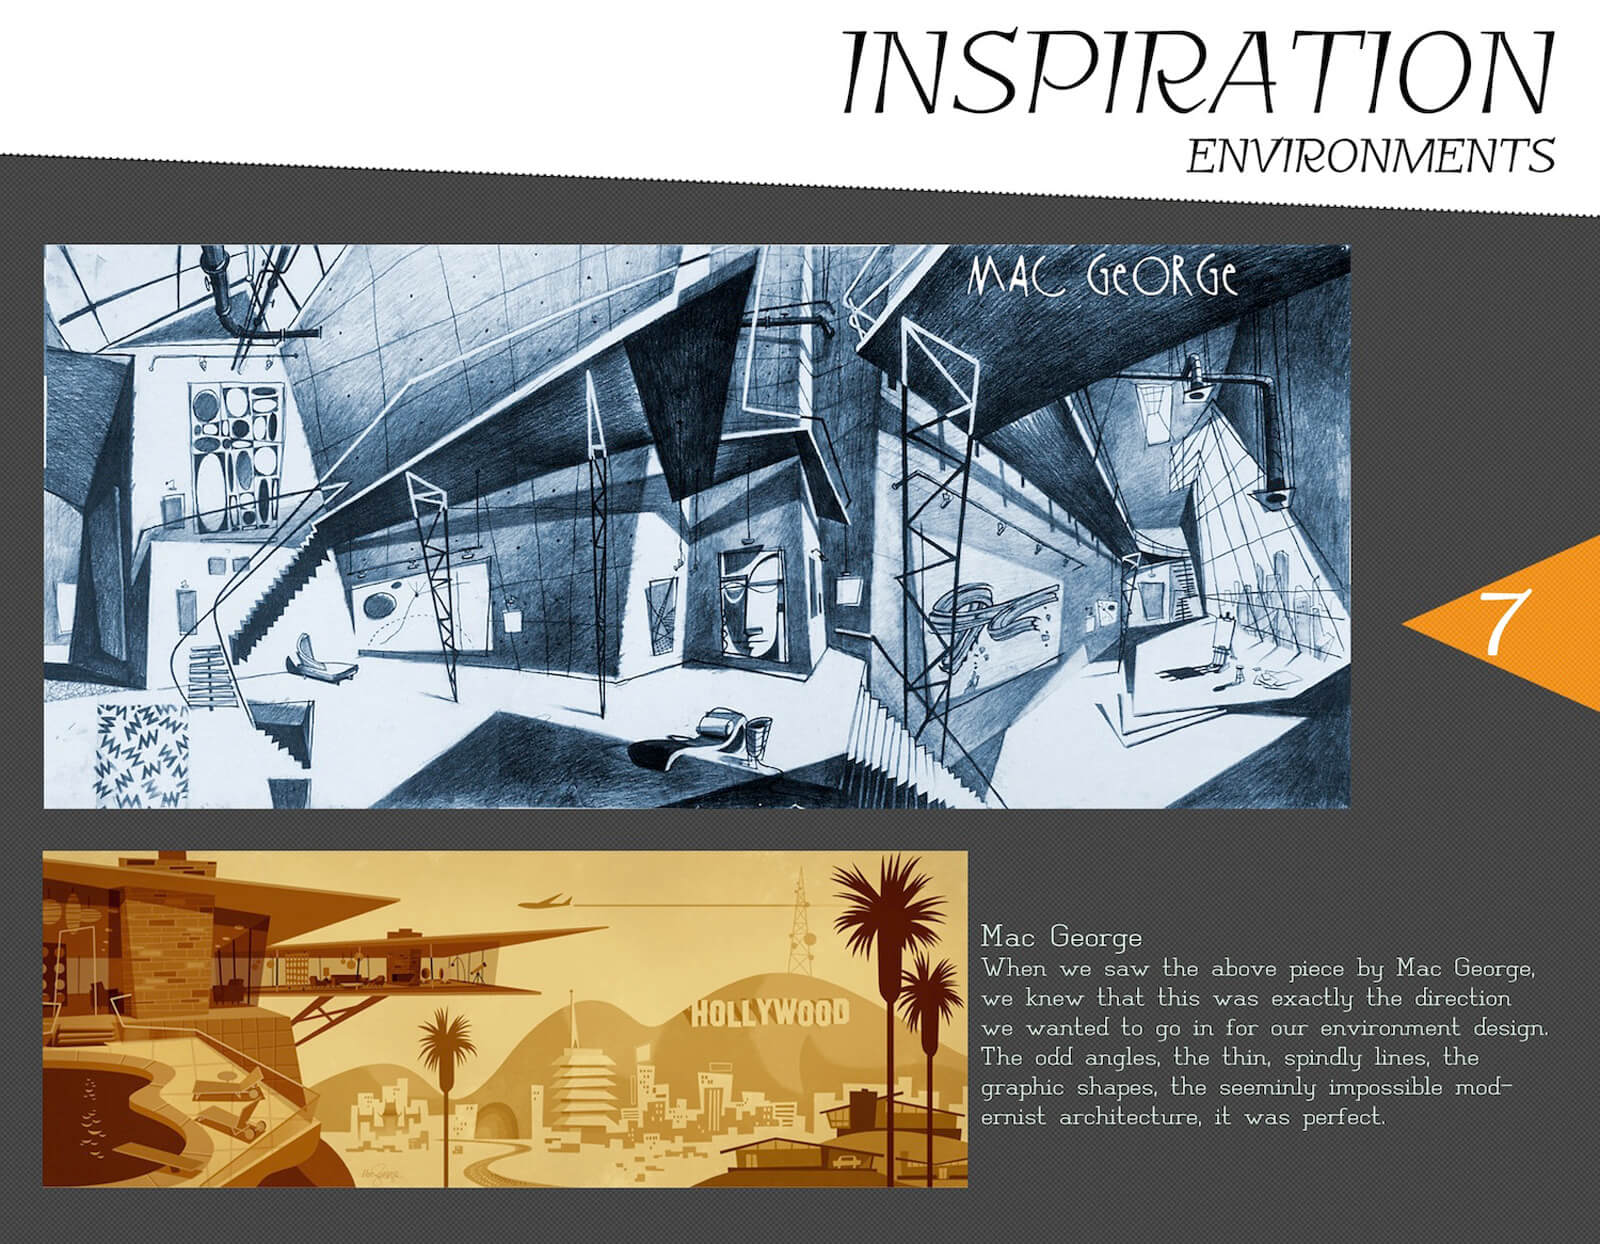 Environment inspiration slide for the film Super Secret, with stylized reference art by Mac George